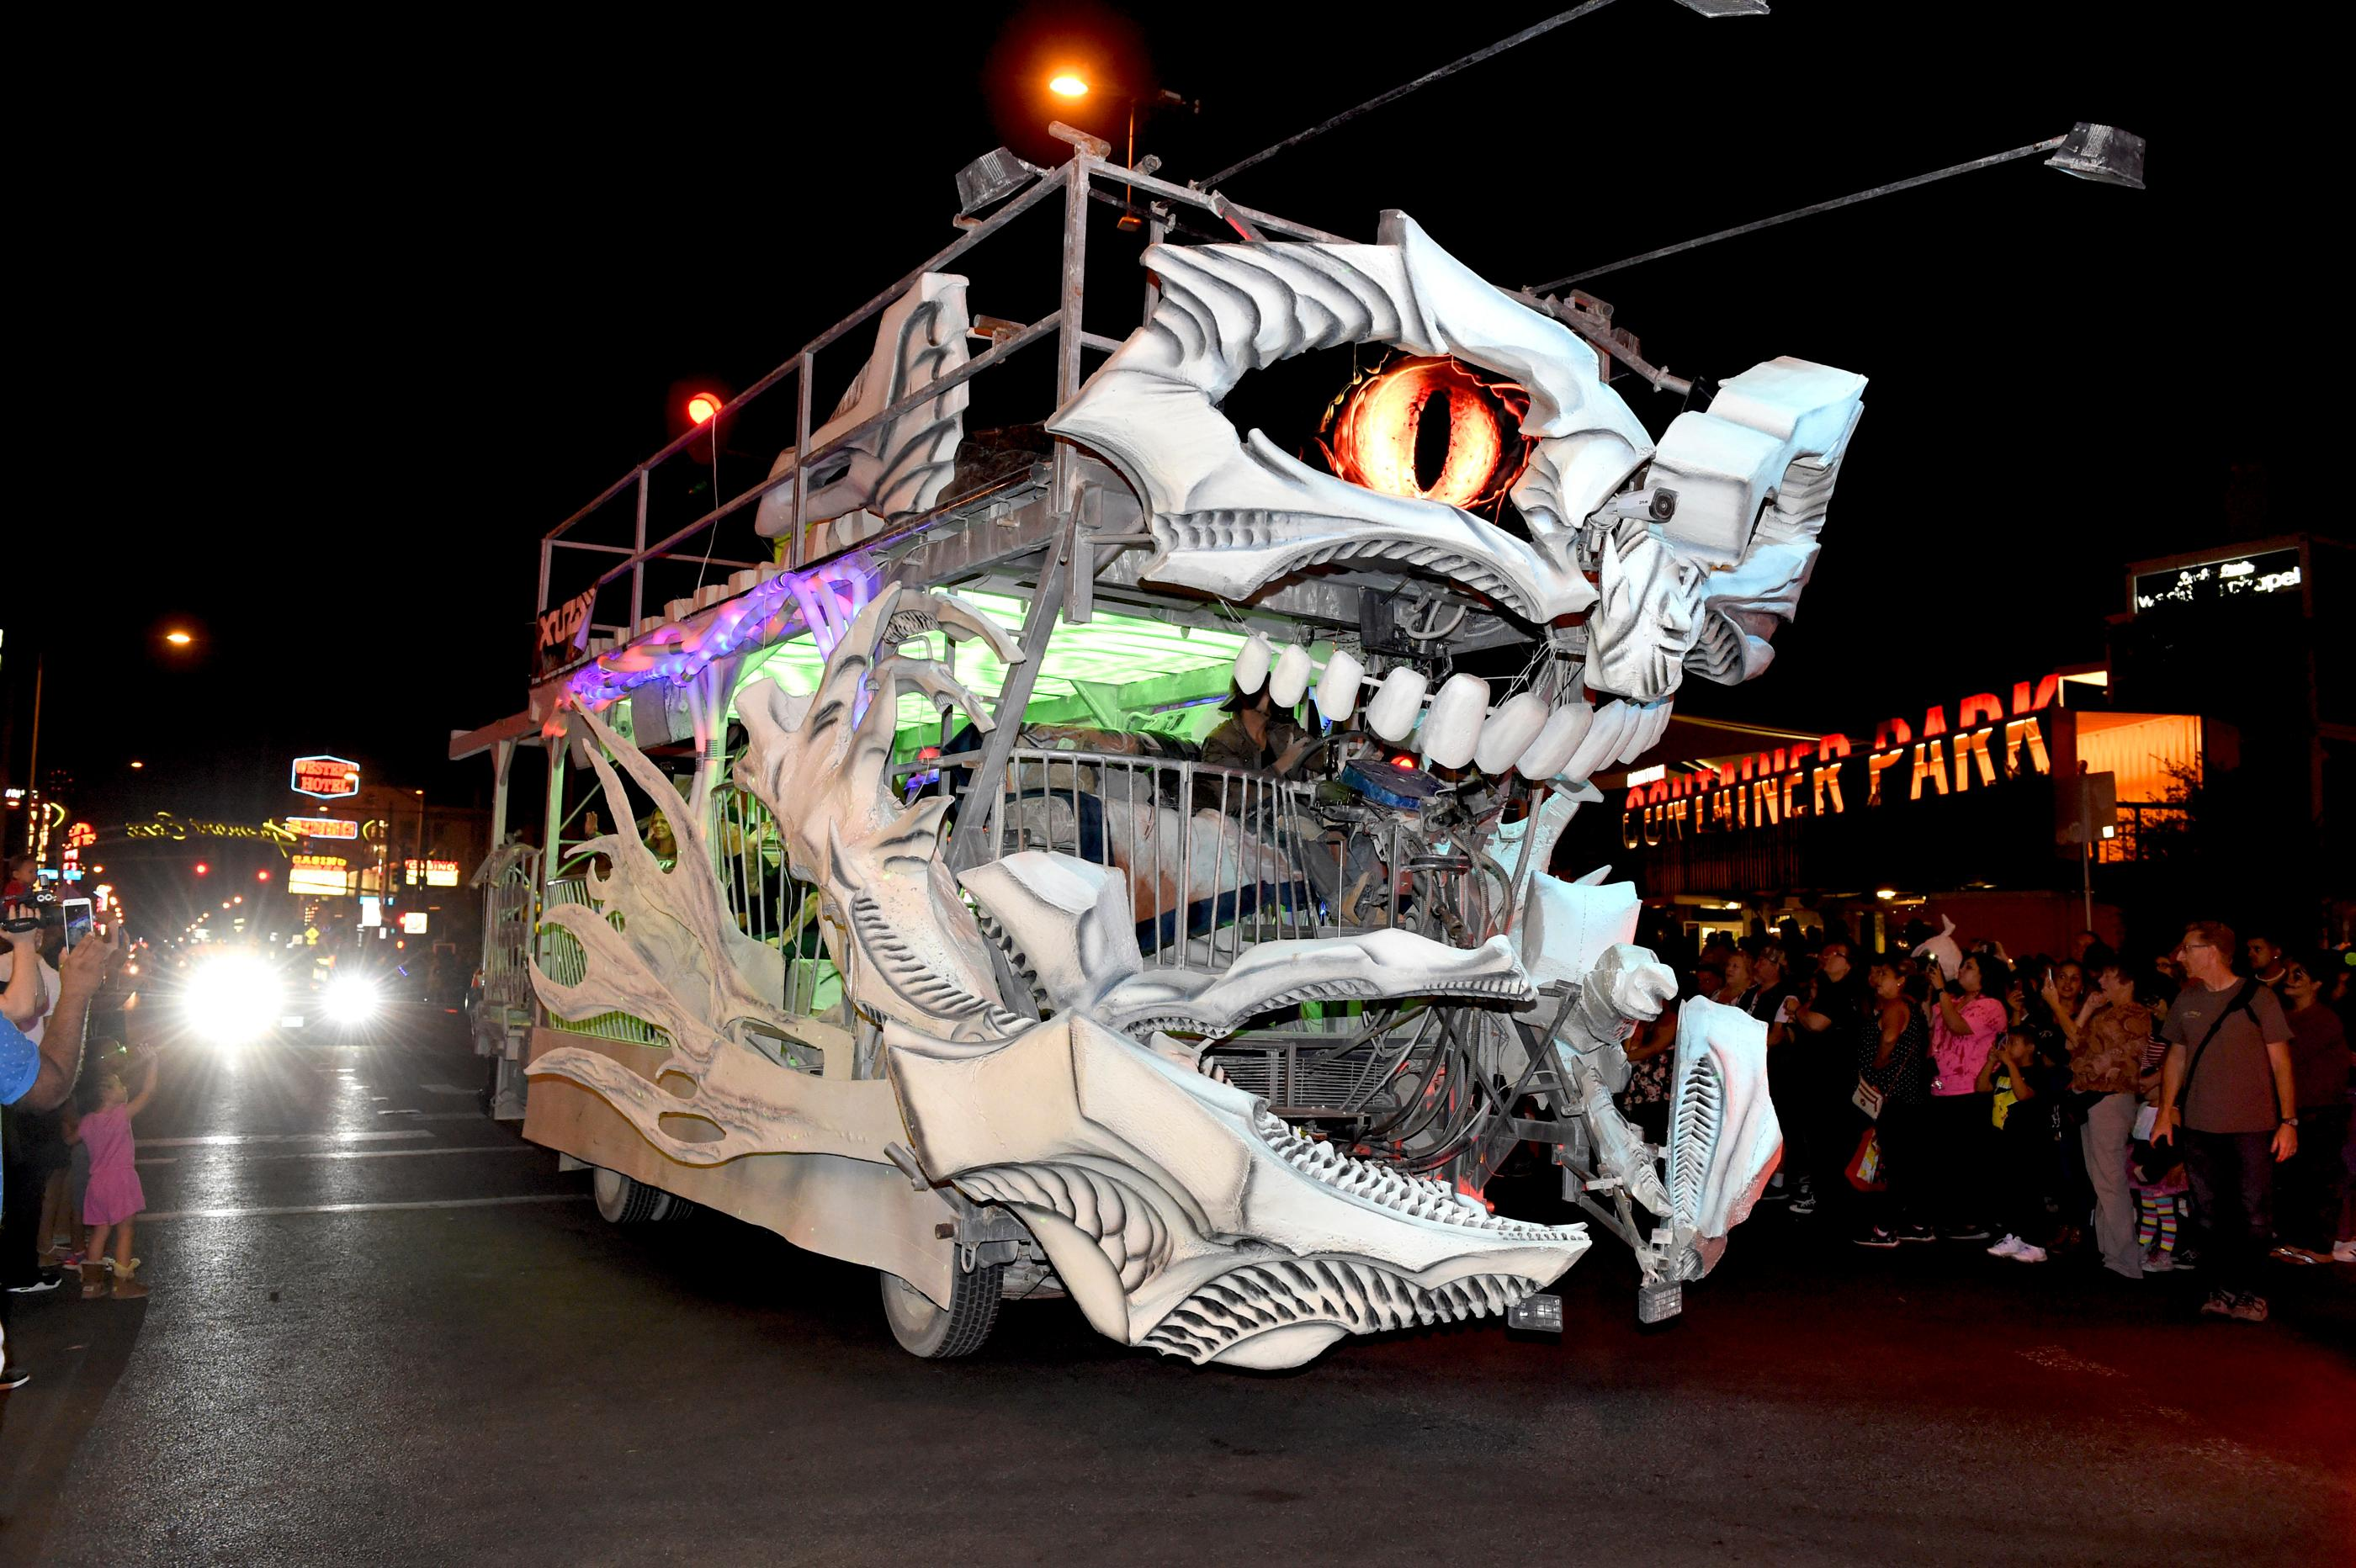 Crowds gather to watch and participate in the Sin City Halloween Parade in the East Fremont District. Thursday, October 28, 2017. Saturday, October 28, 2017. [Glenn Pinkerton/Las Vegas News Bureau]